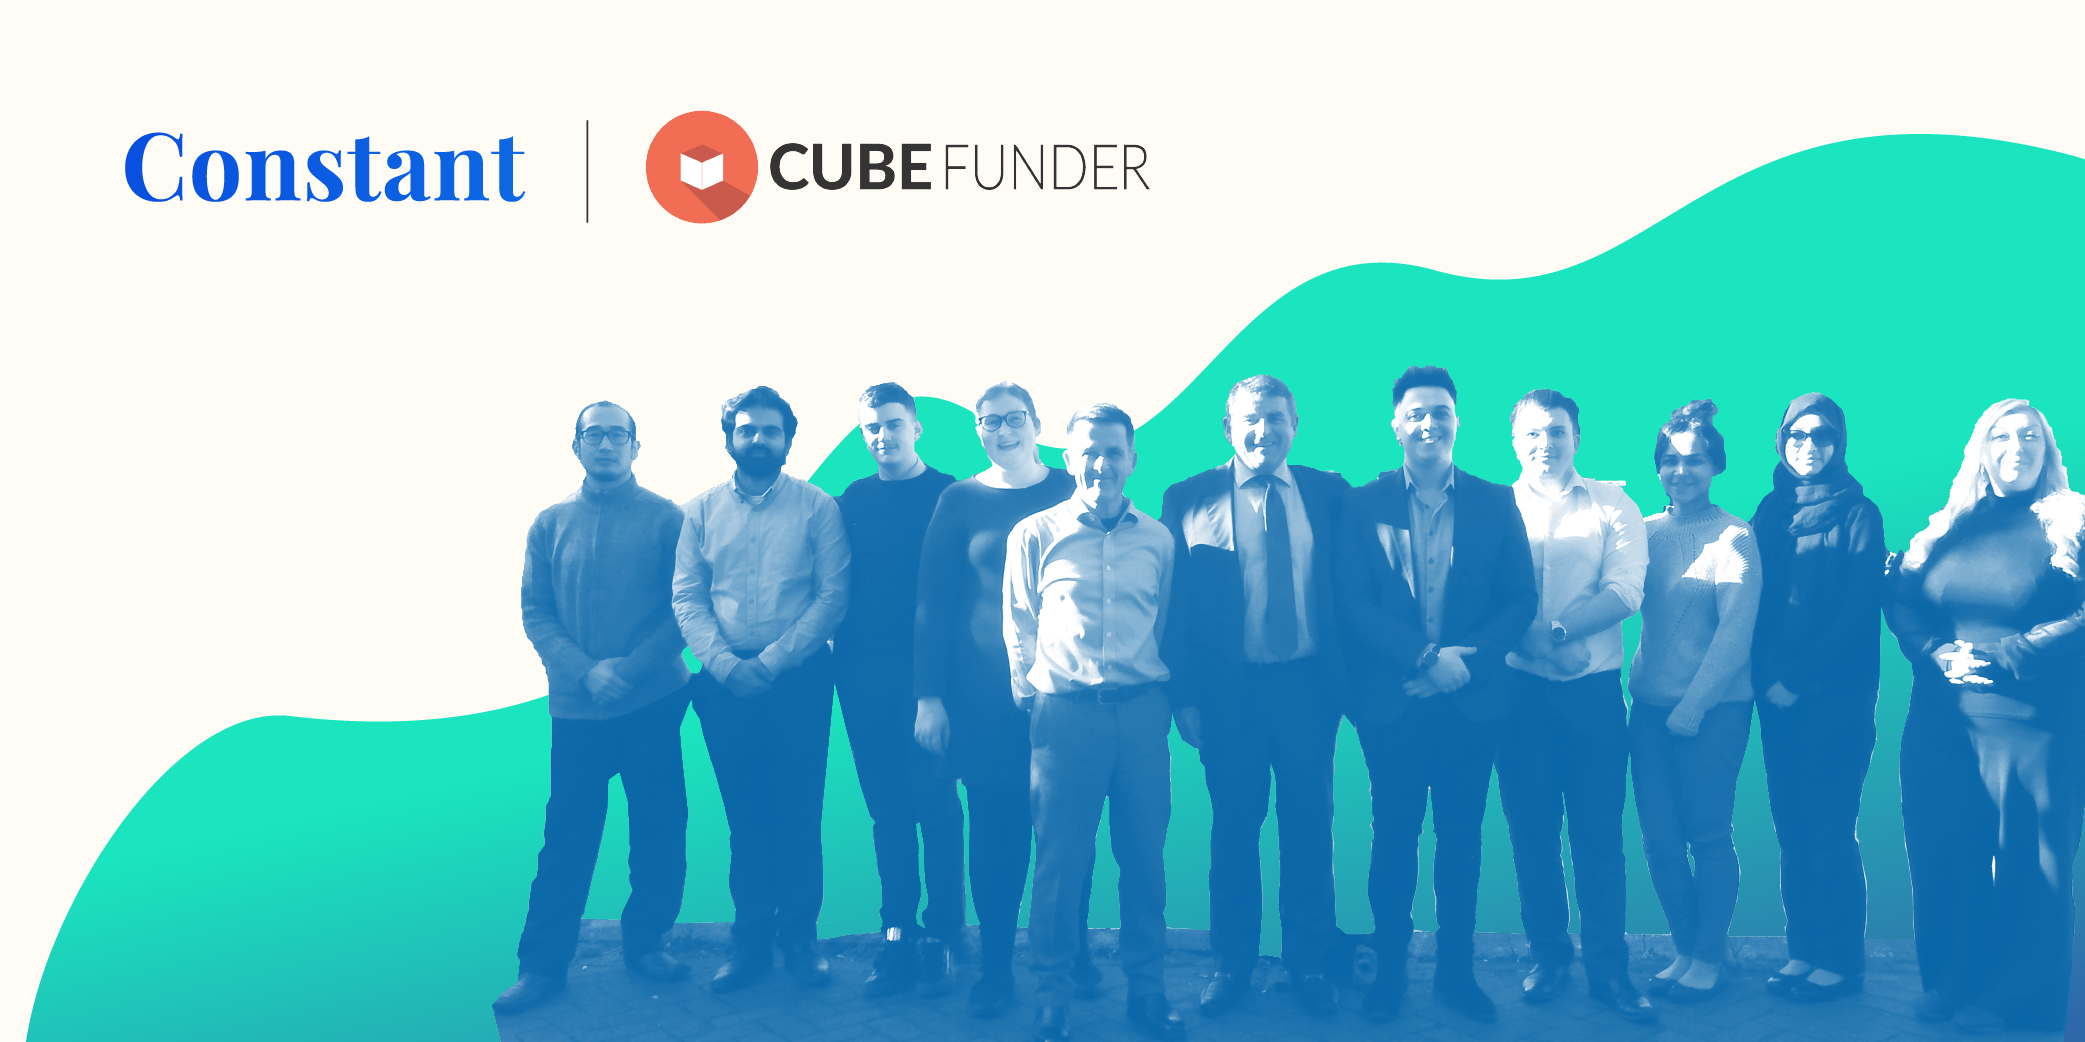 Introducing CubeFunder: Earn 9.5% APR investing in commercial loans through top-rated UK business lender